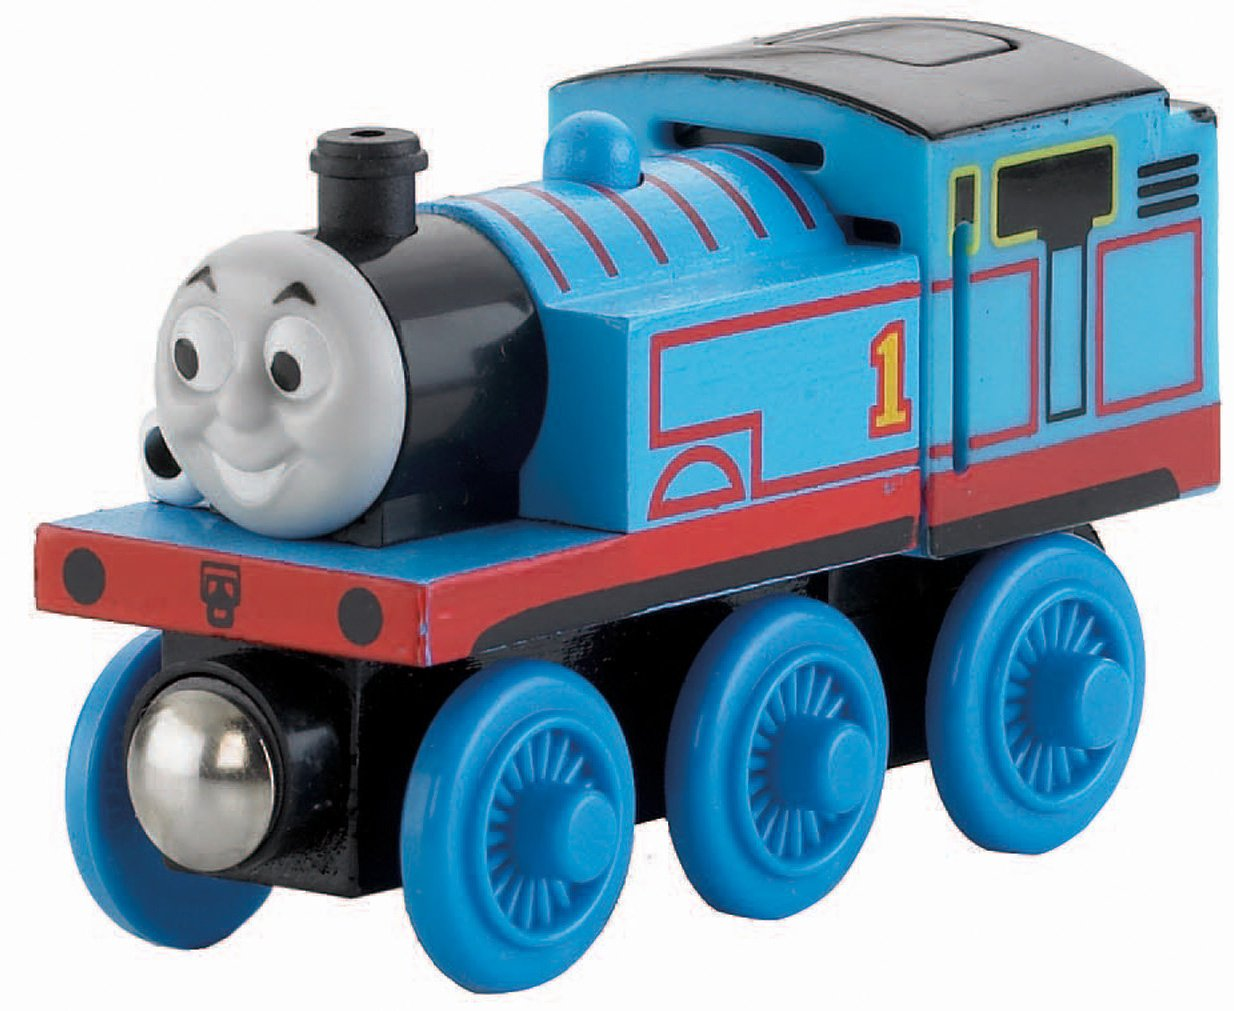 Thomas & Friends Fisher-Price Wooden Railway, Talking Thomas - Battery Operated